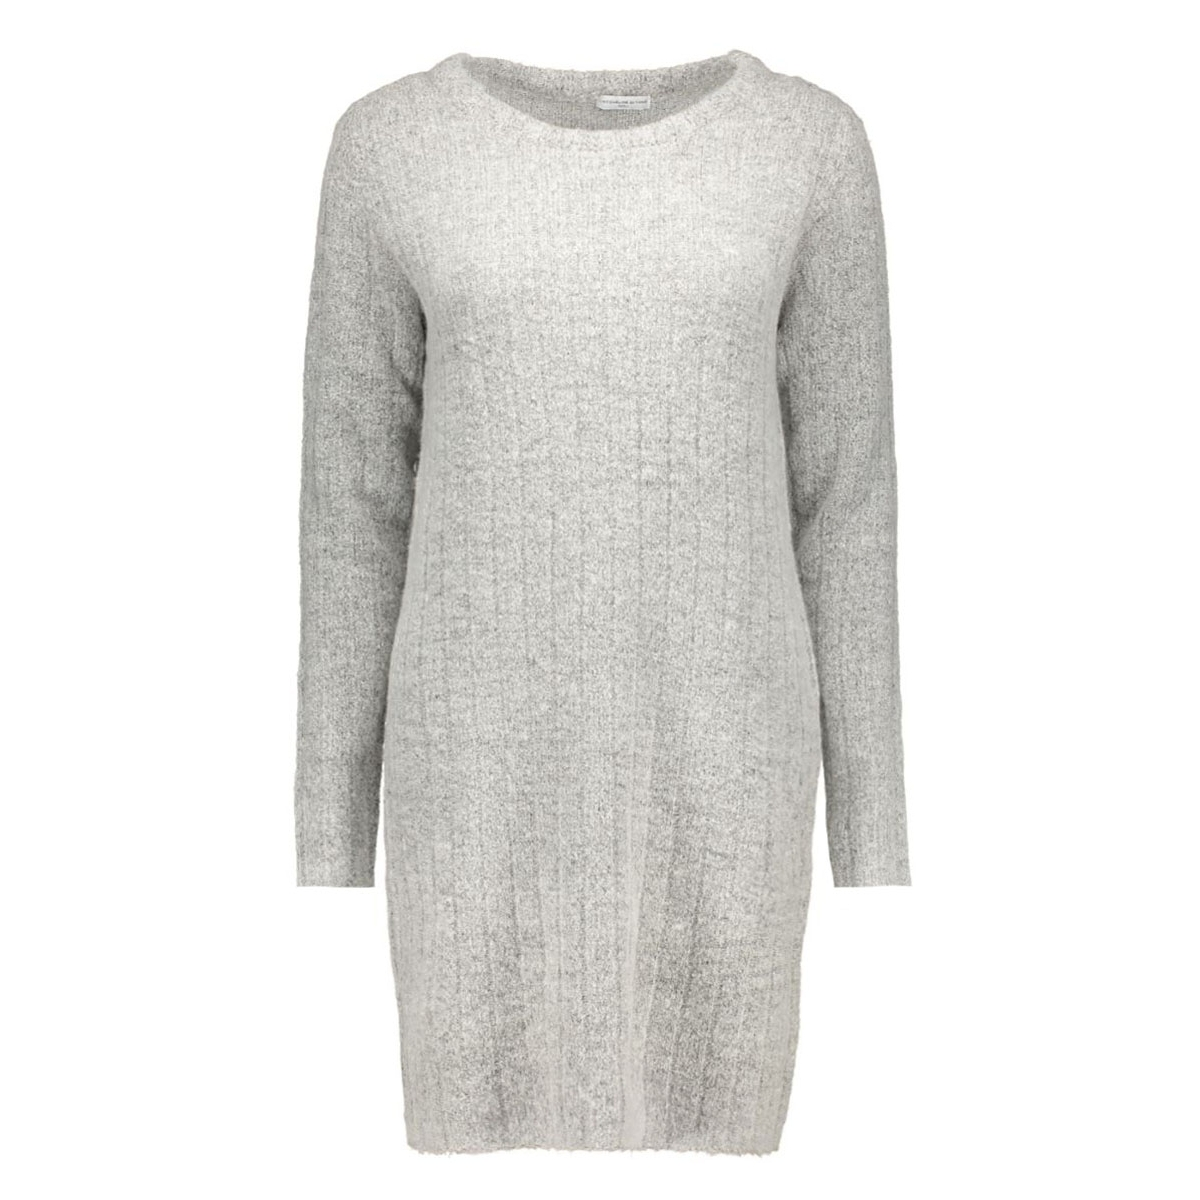 jdyraven l/s dress knt 15121489 jacqueline de yong jurk light grey melange